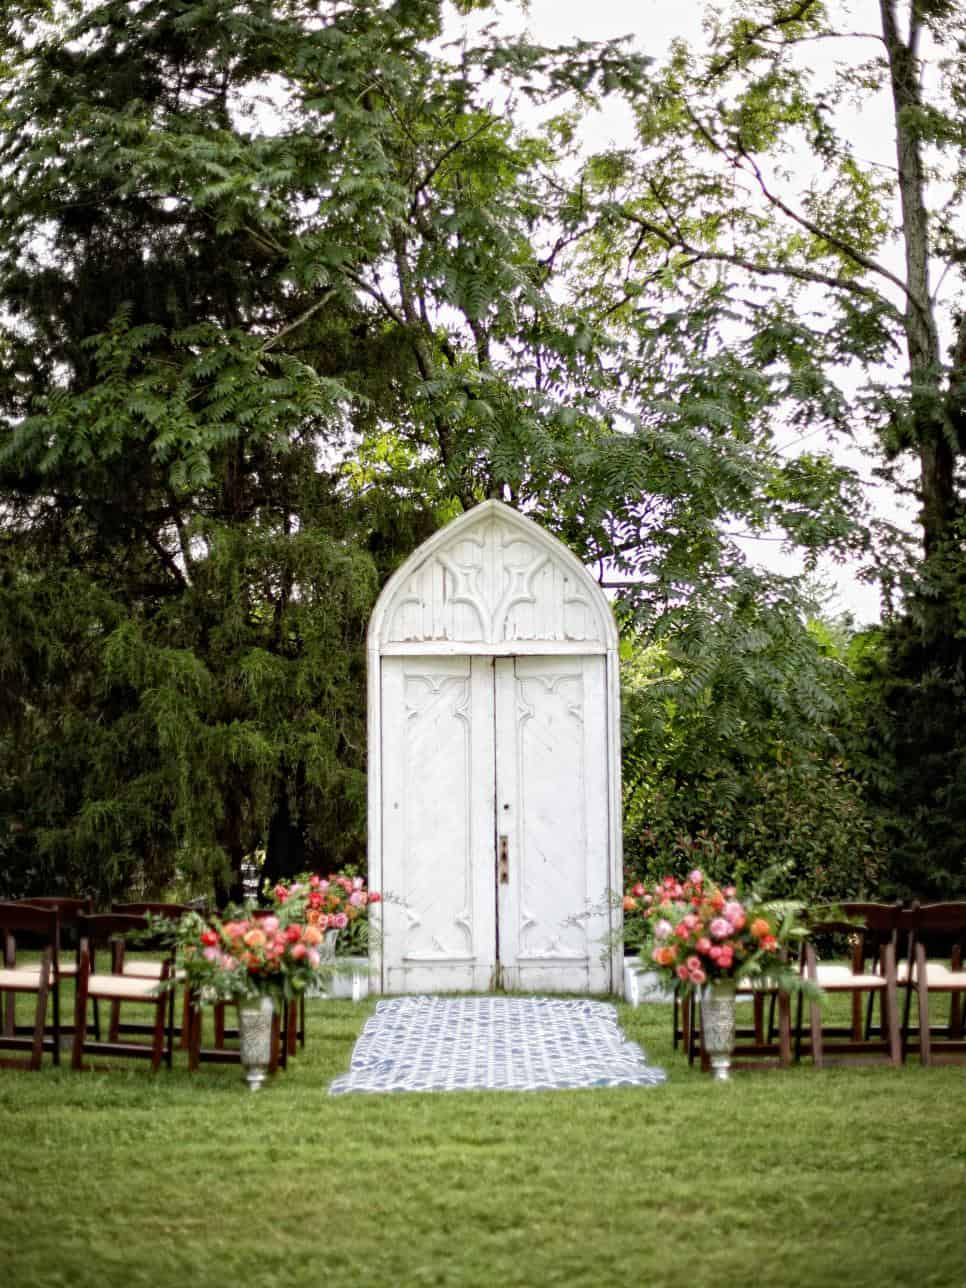 15 diy wedding arches to highlight your ceremony with vintage church door wedding arch diy junglespirit Choice Image